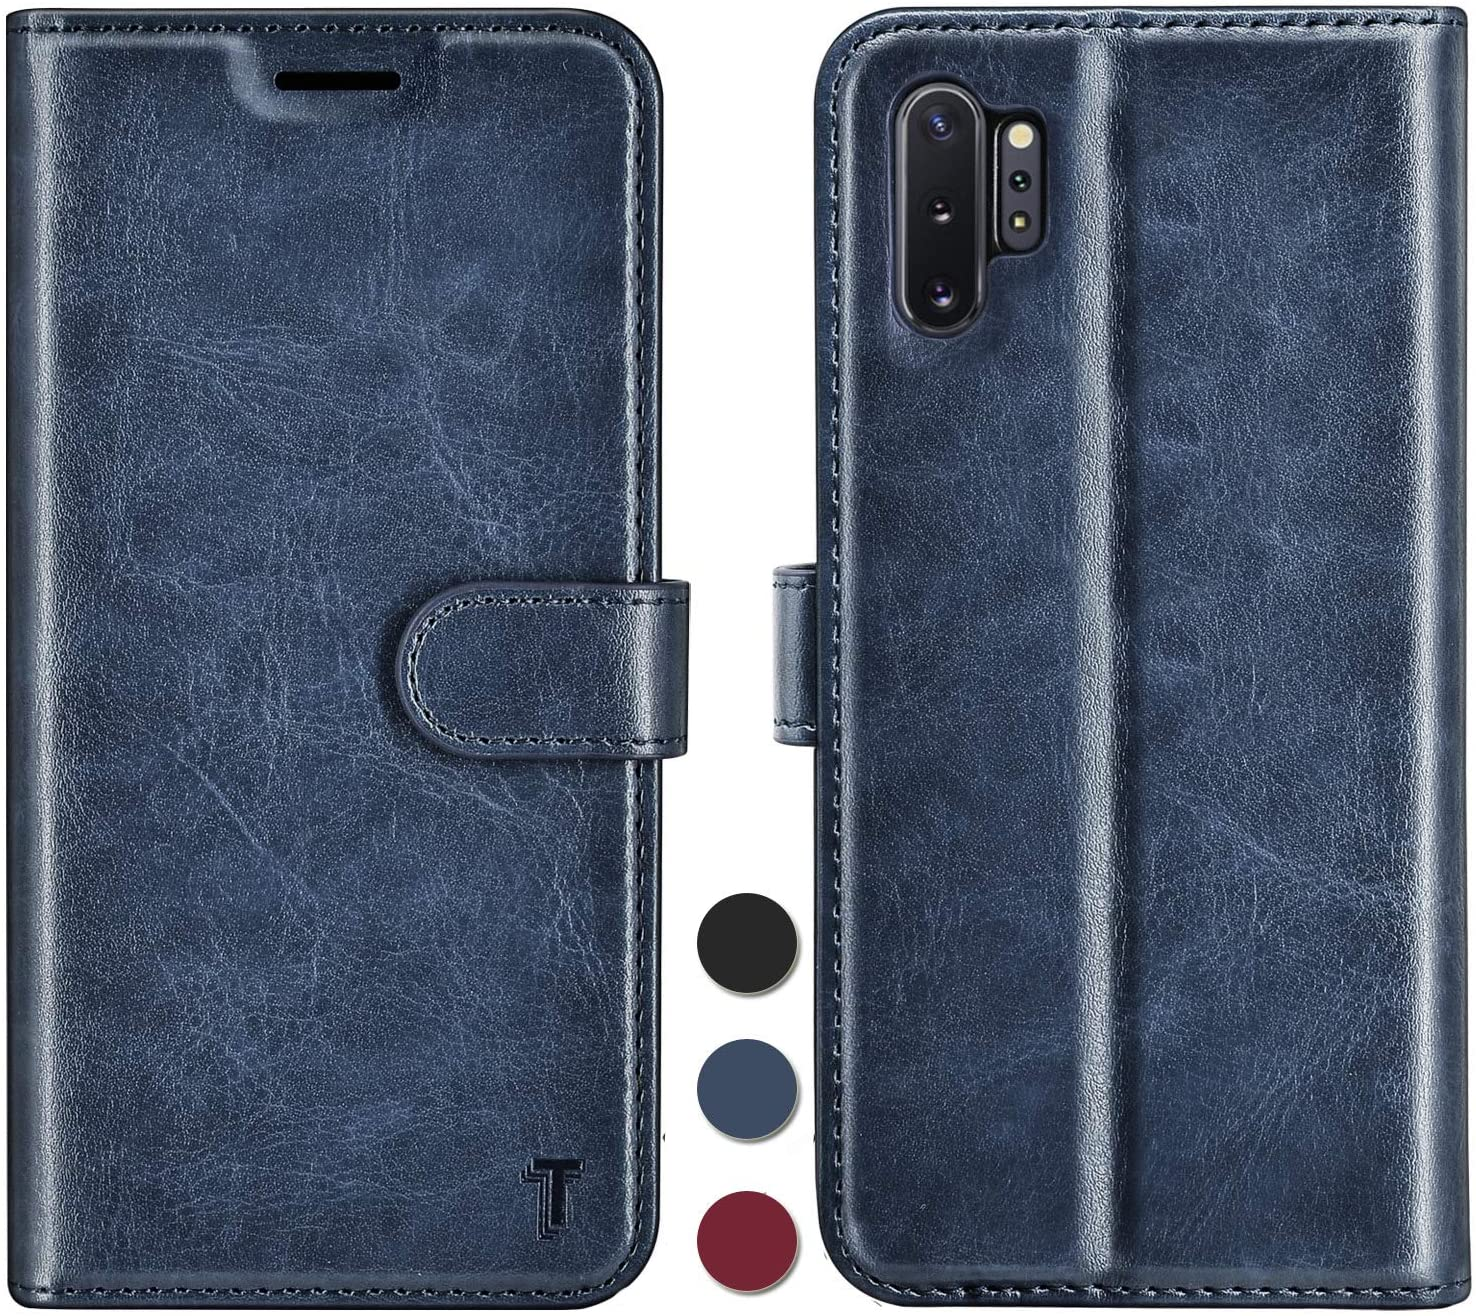 Njjex Samsung Galaxy Note 10 Case, for Galaxy Note 10 5G / Note 10 Wallet Case, RFID Blocking PU Leather Folio Flip ID Credit Card Slots Holder [Kickstand] Magnetic Closure Phone Cover [Dark Blue]